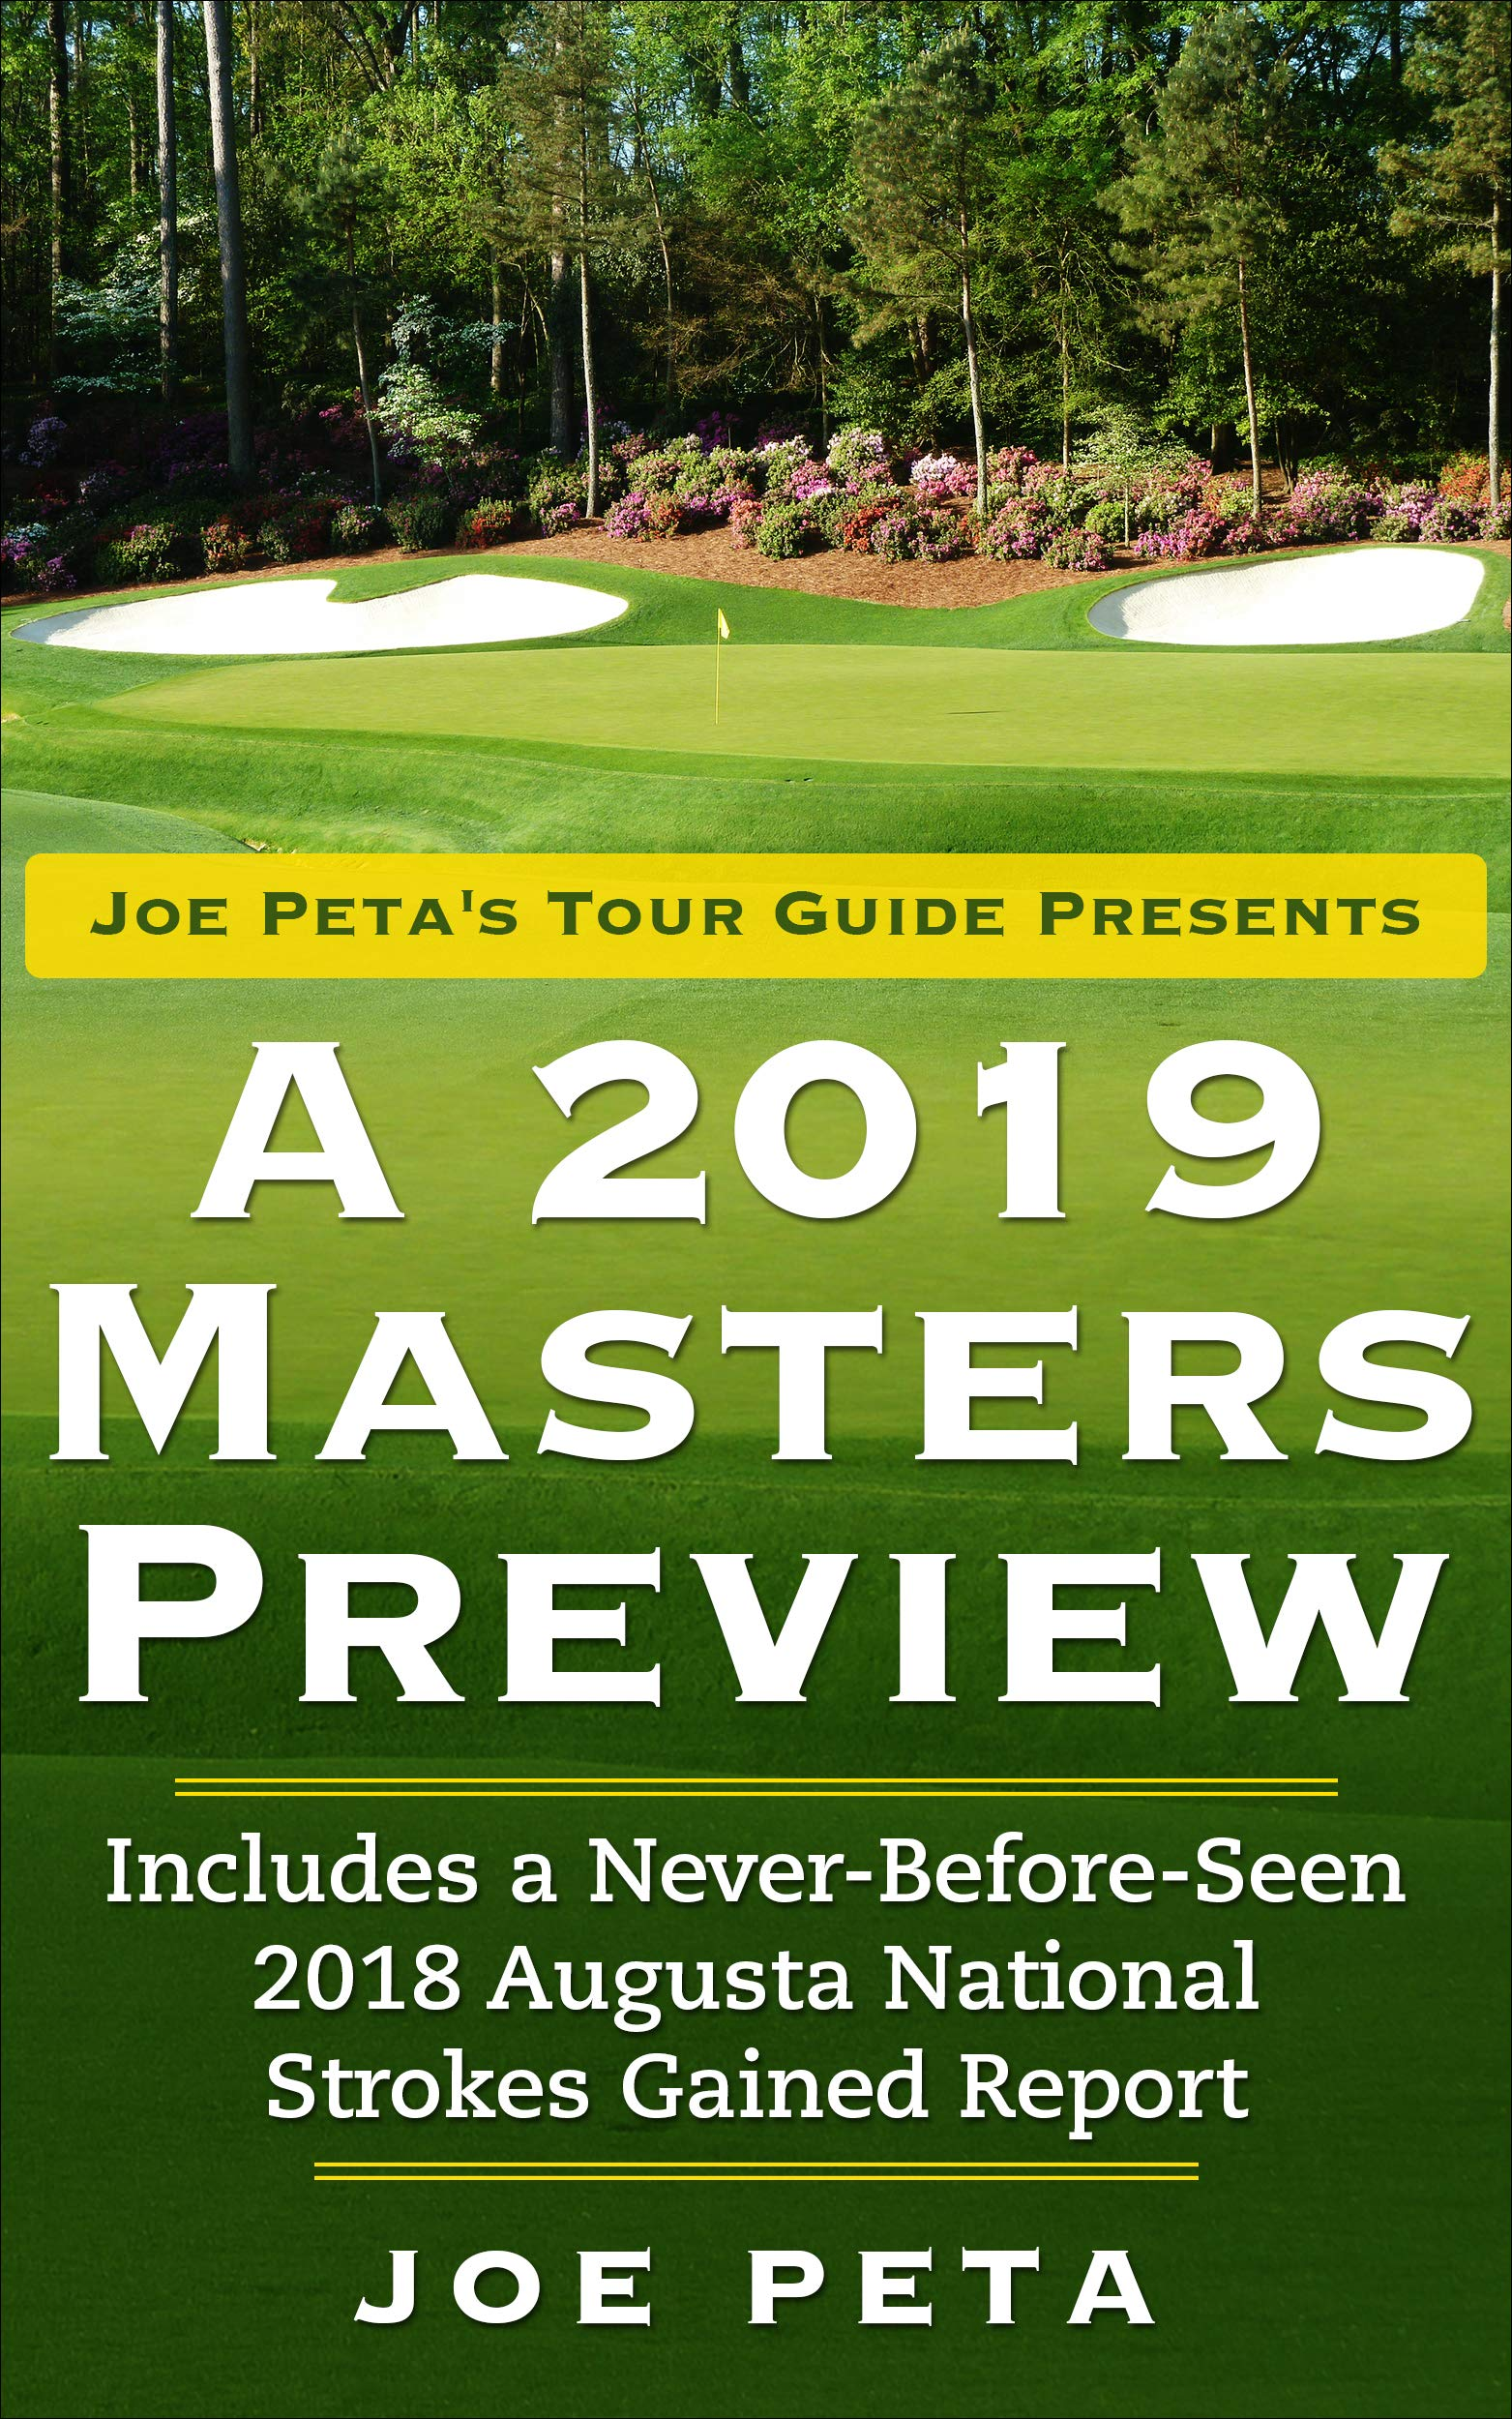 Download Joe Peta's Tour Guide Presents A 2019 Masters Preview (English Edition) 